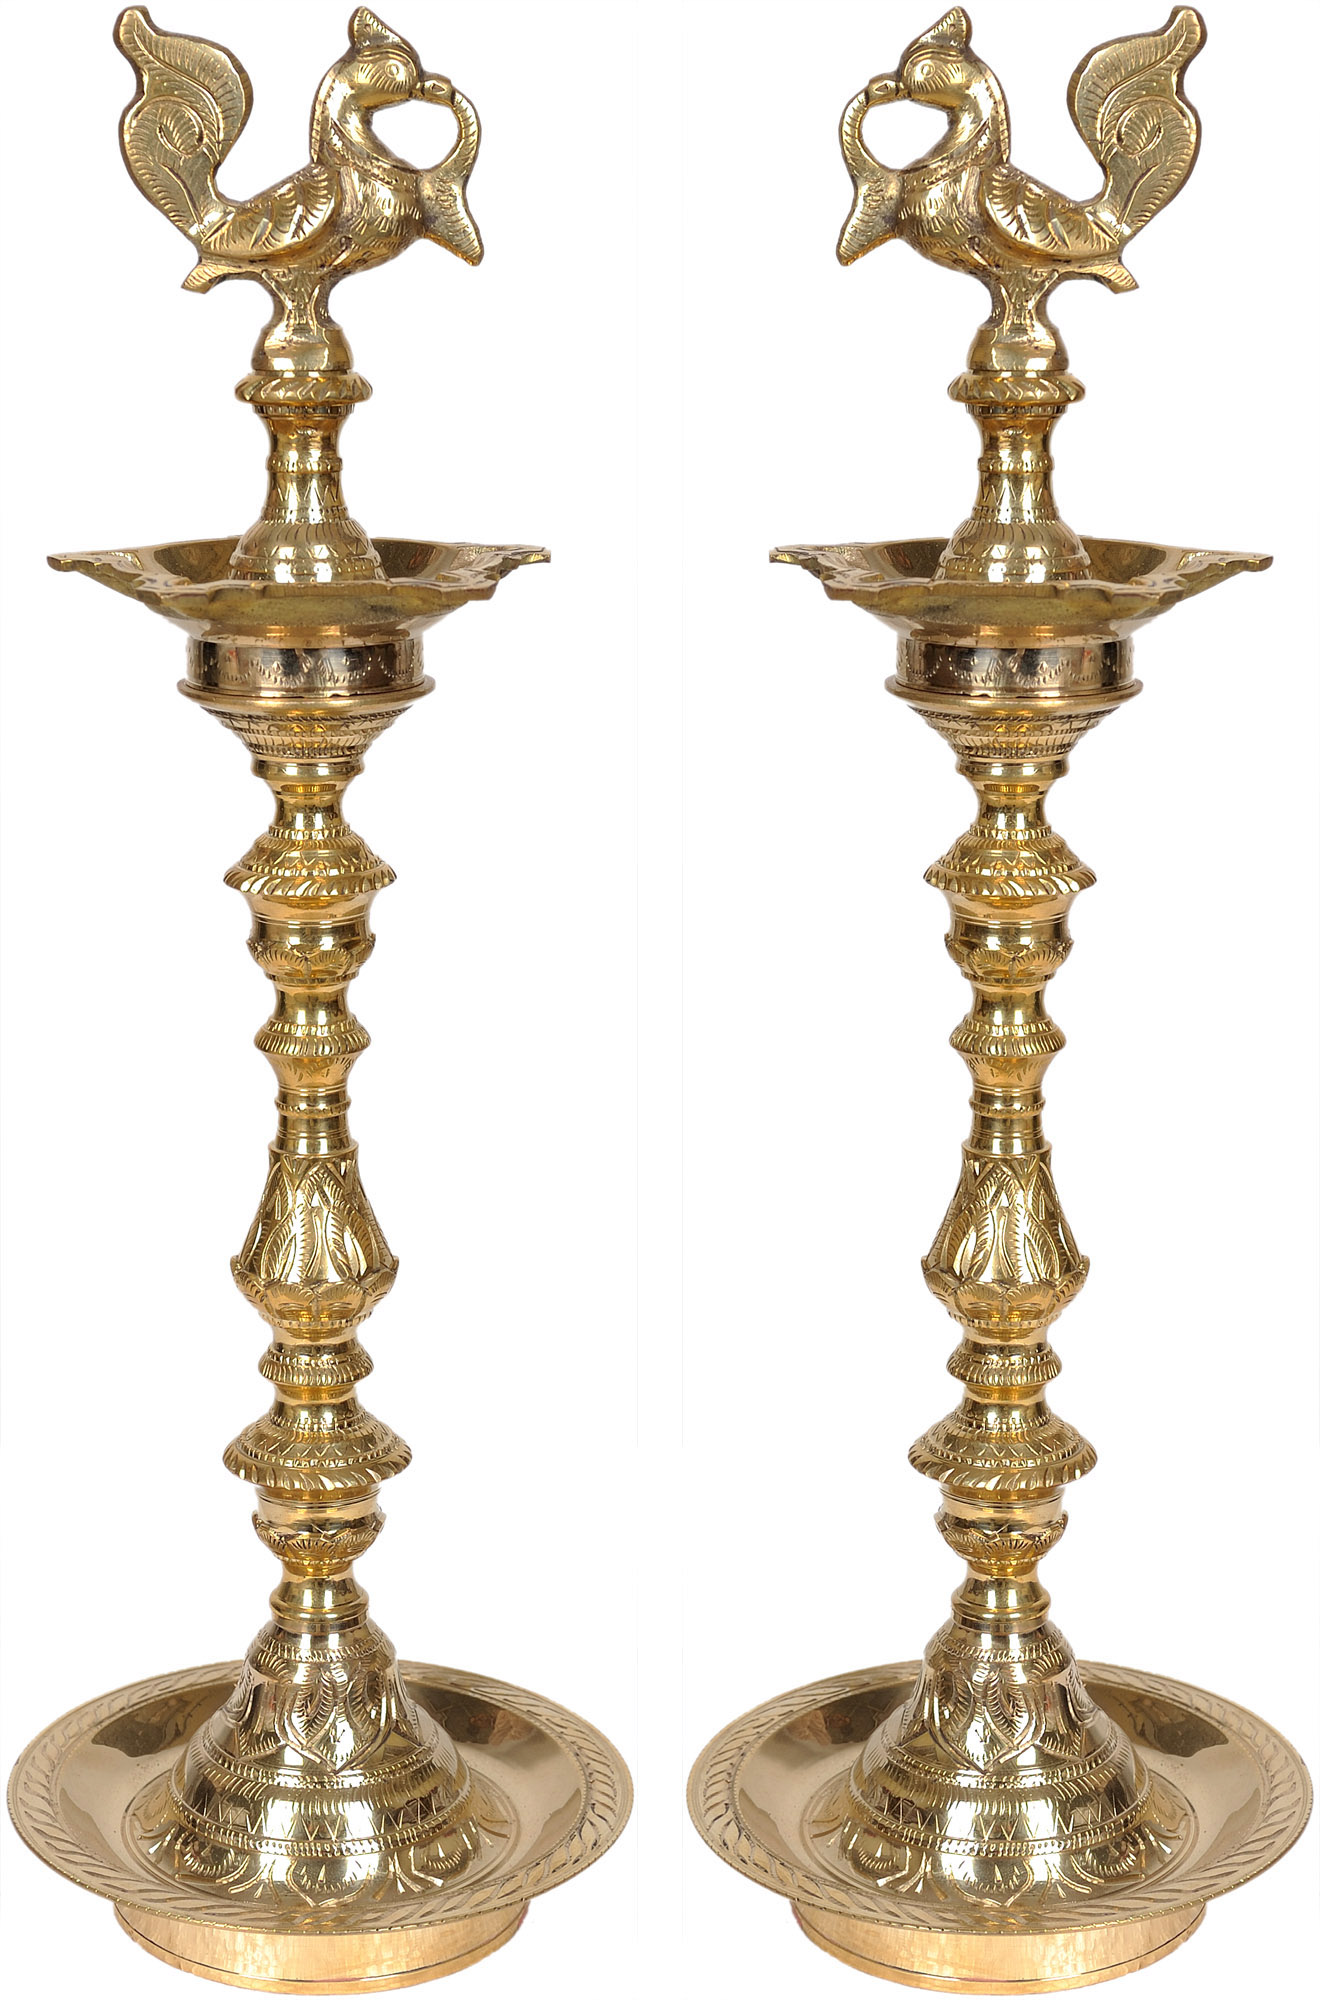 Indian brass lamps the magnificence of a millennial for Brass floor lamp india